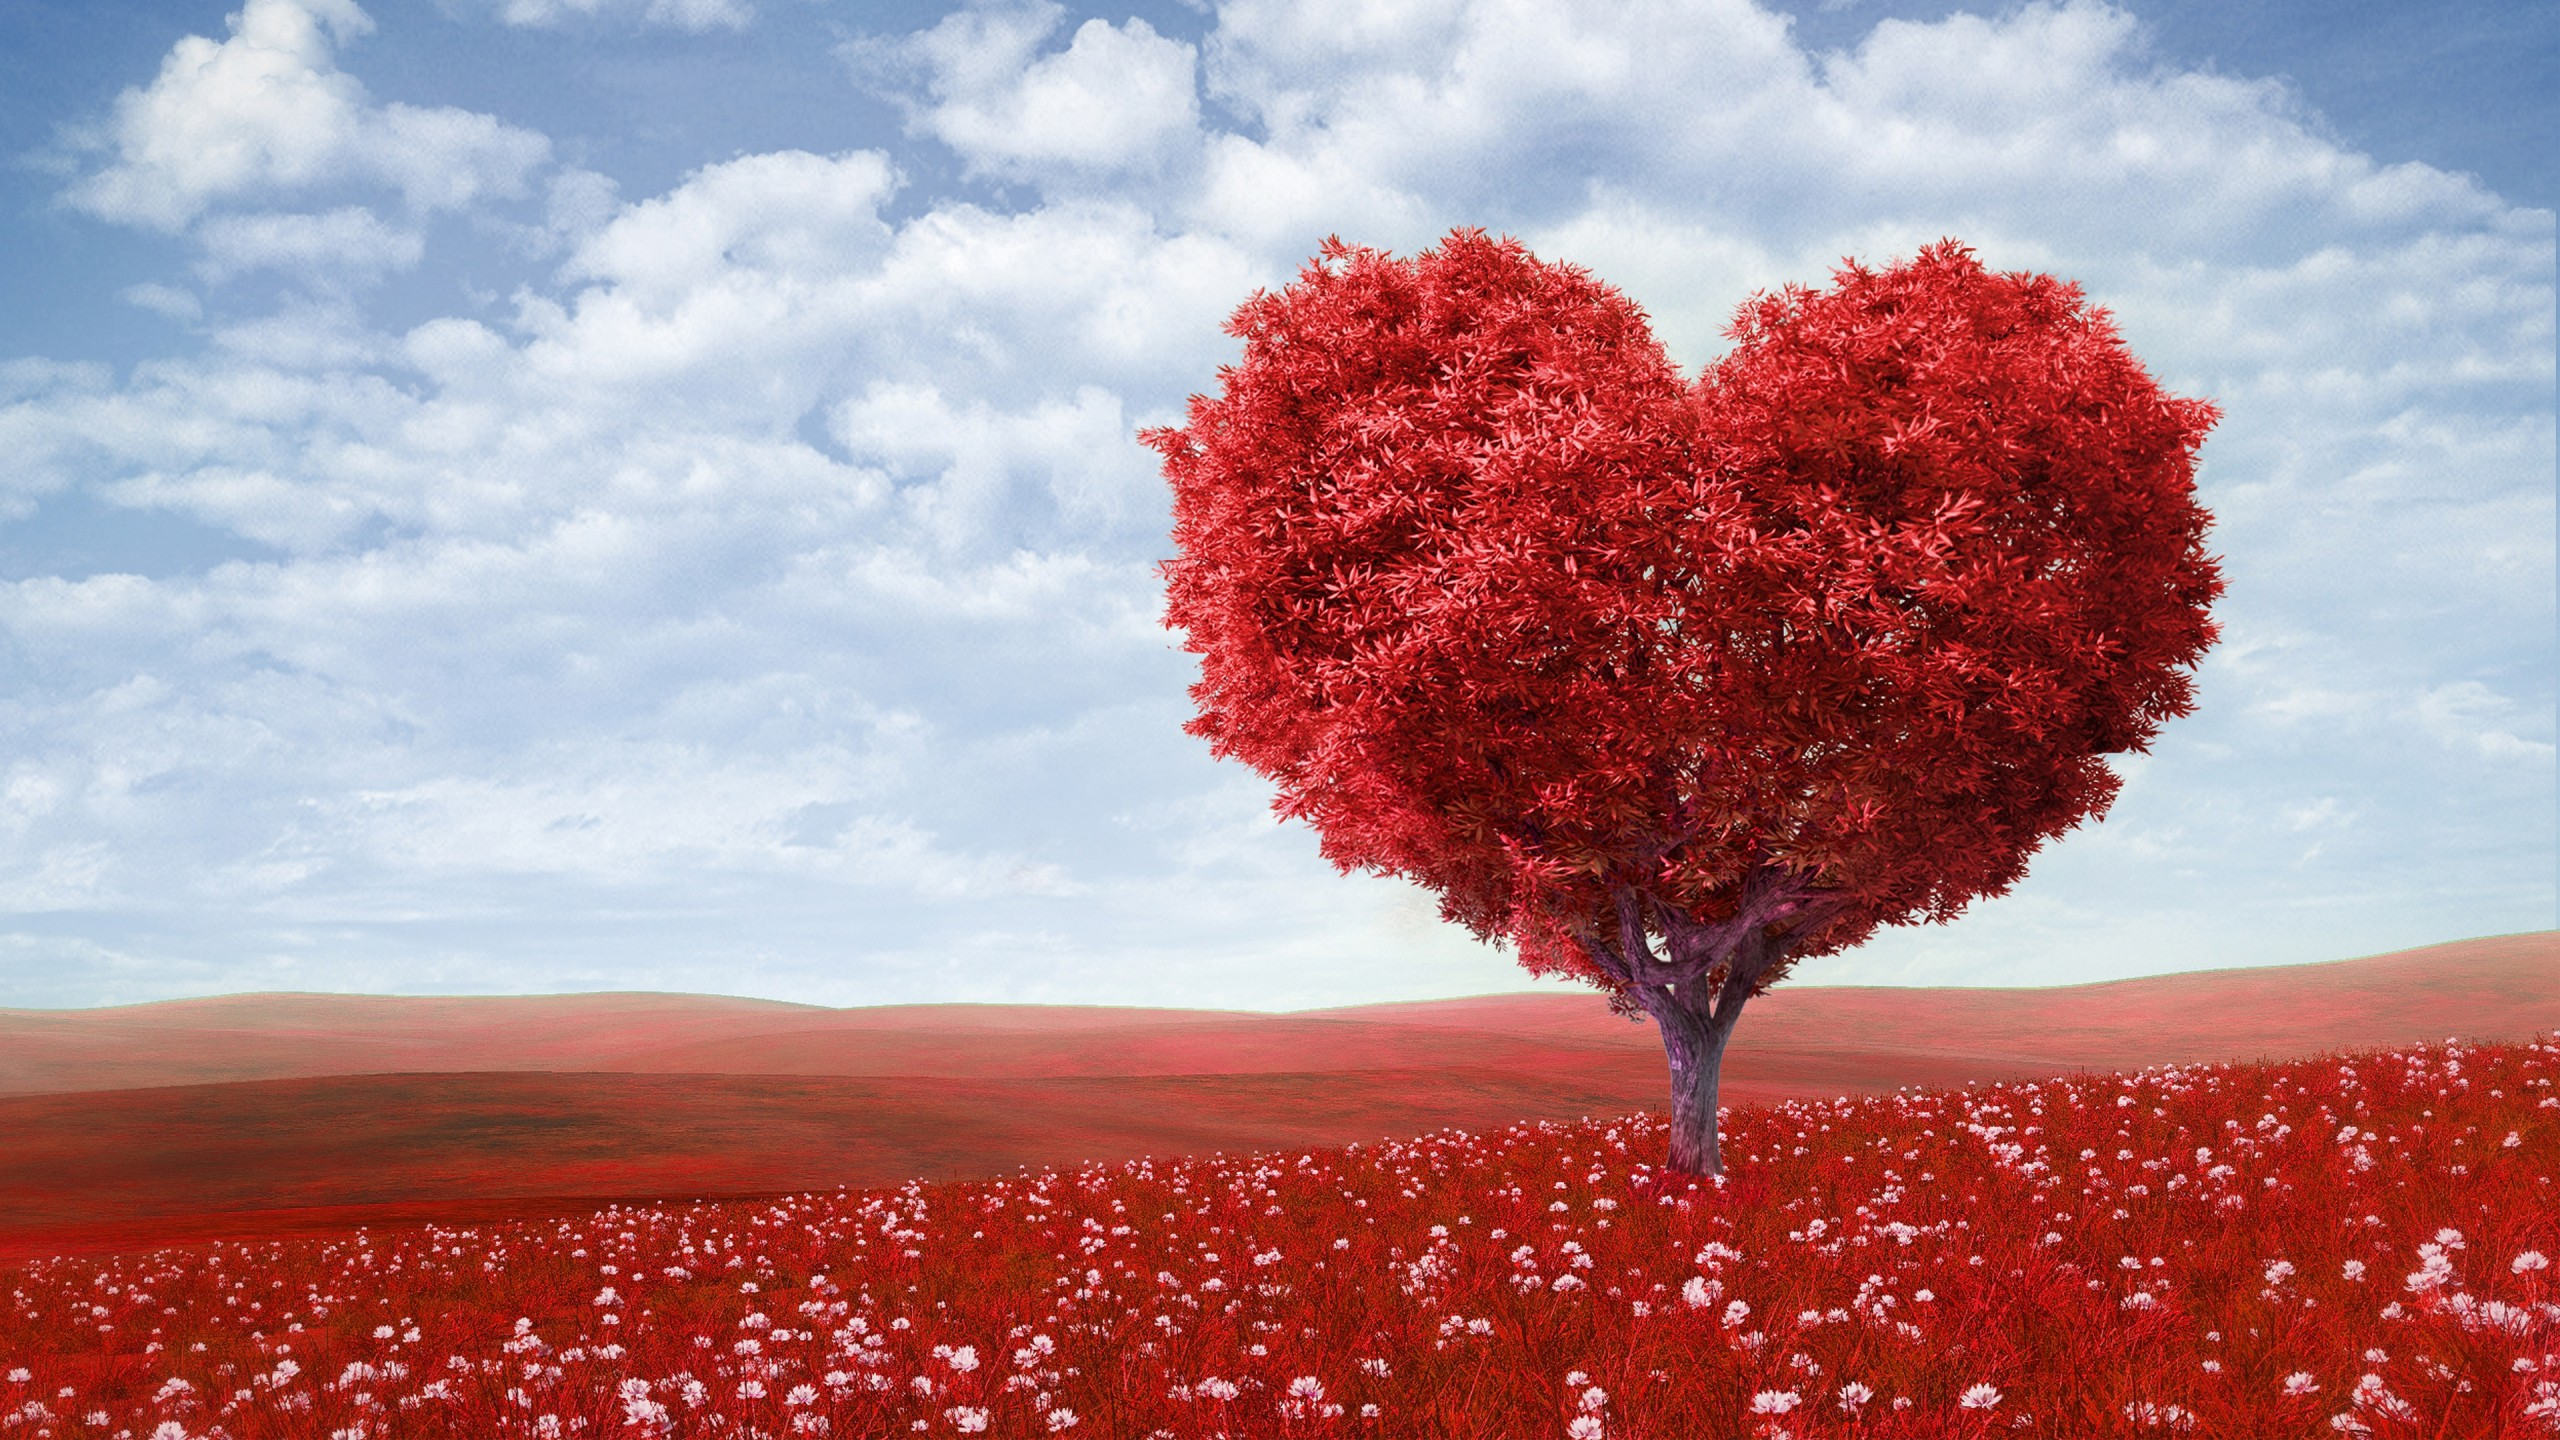 Fall Wallpaper Cute Red Love Heart Tree Wallpapers Hd Wallpapers Id 16776